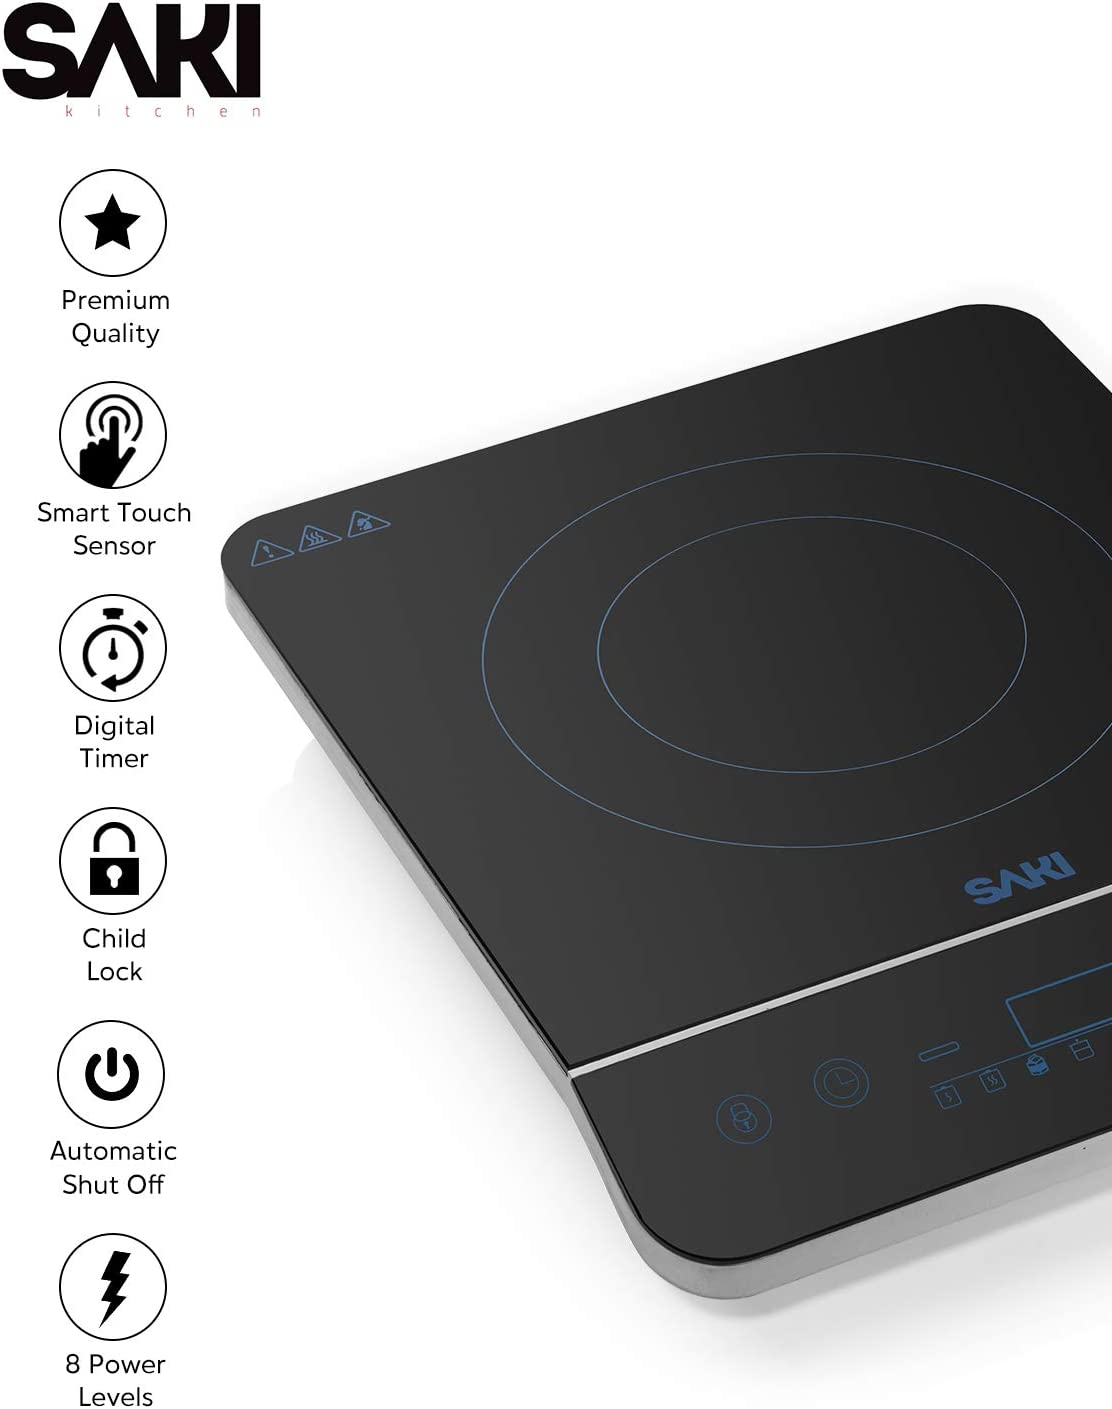 Saki Induction Cooktop 1800W Portable Induction Cooker Countertop Burner Electric Stovetop, 8-level power control, Touch Sensor, Kids Safety Lock, Timer, for stainless steel Pot Pan